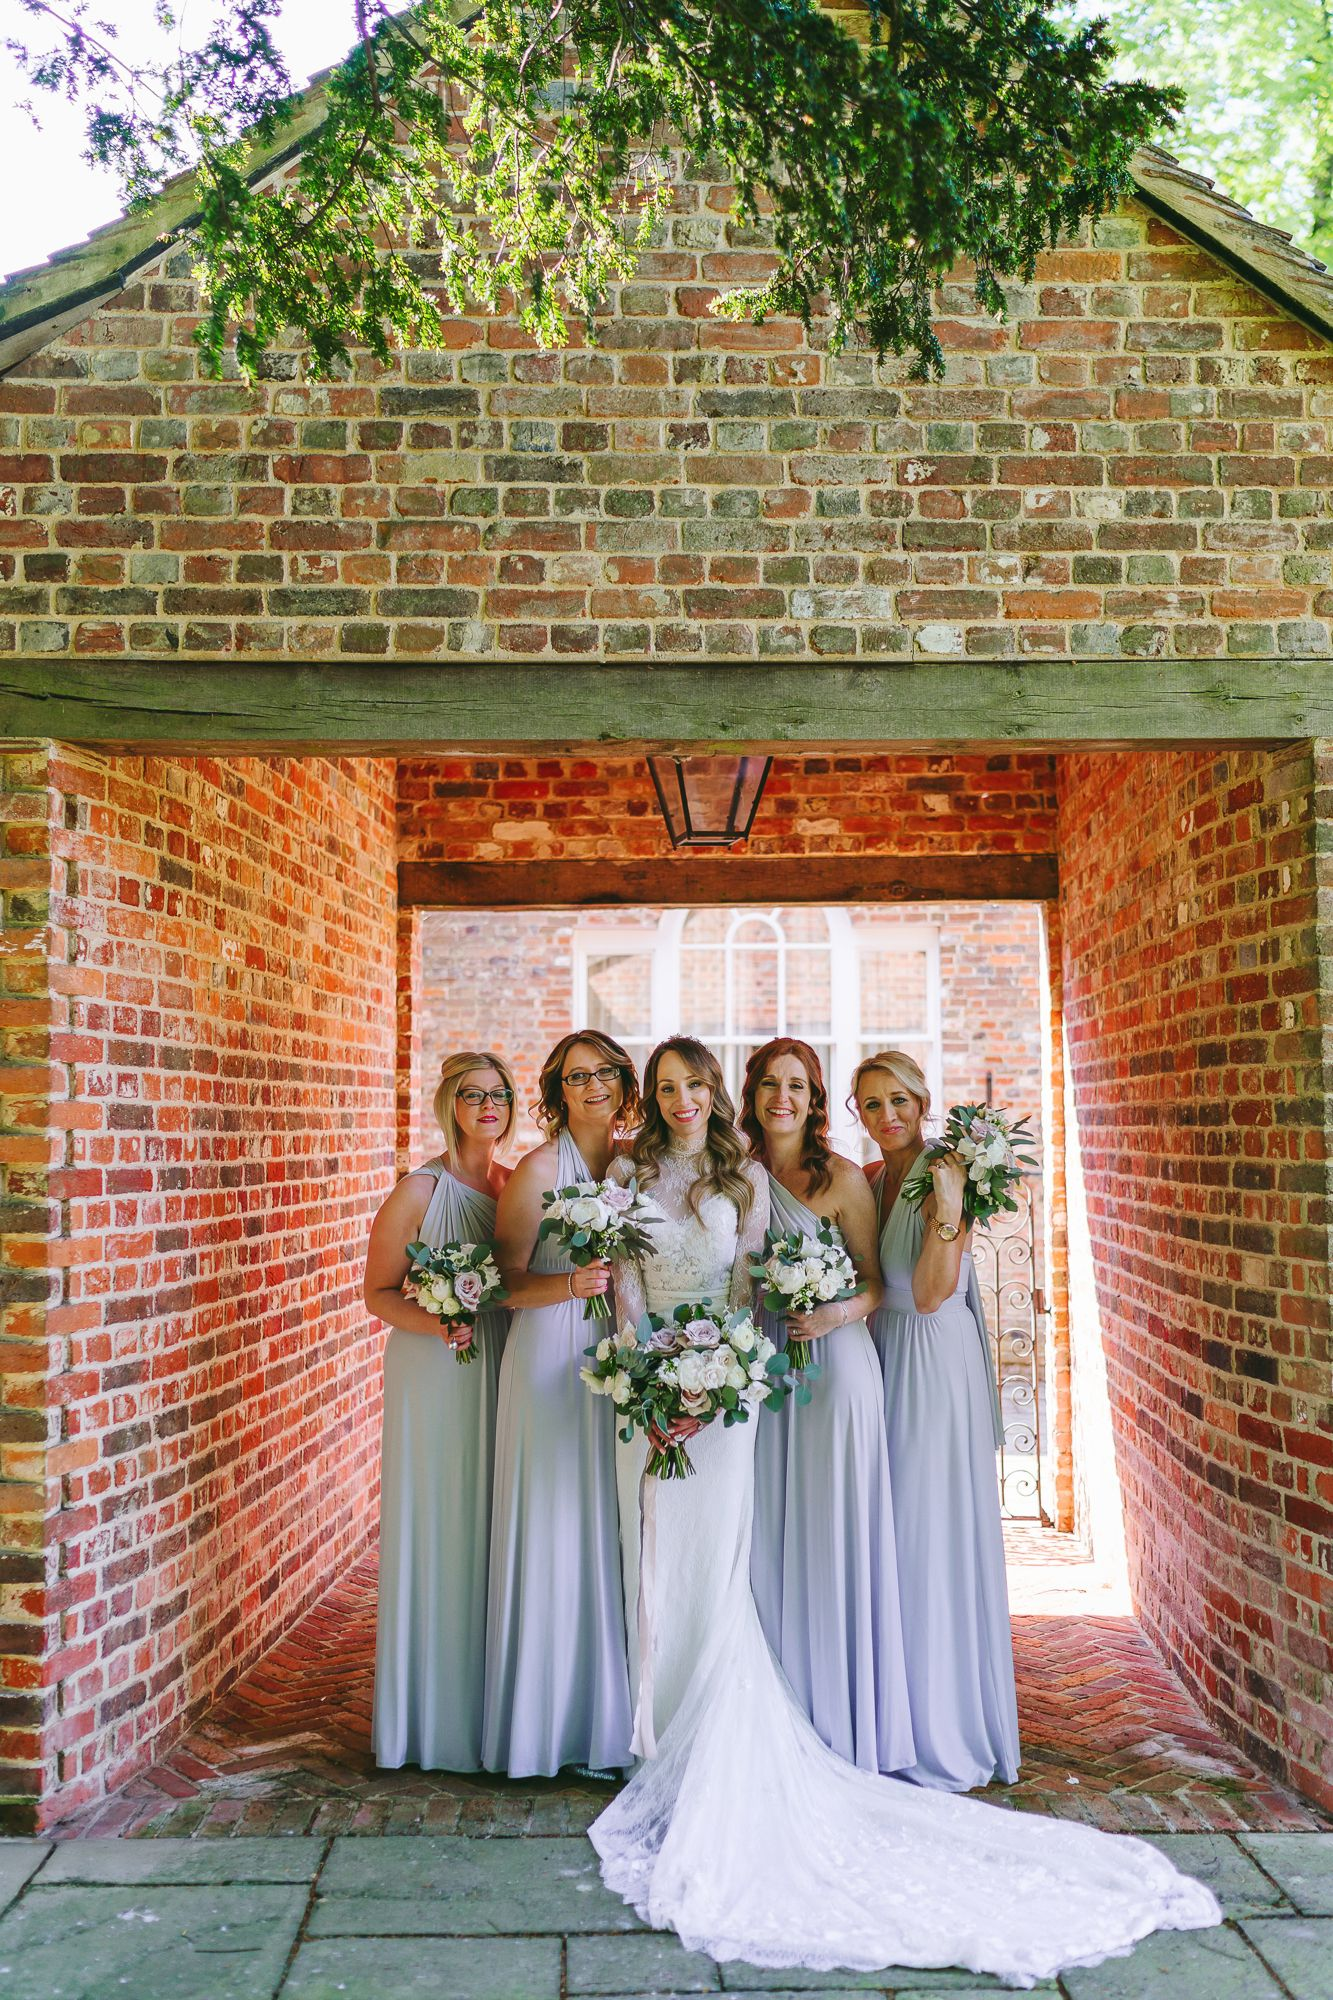 A Sienna Von Hildemar Dress + Celestial Headpiece for a Romantic Wiltshire Country House Wedding Bridesmaids wear pale blue dresses. Images by Aga Tomaszek Photography